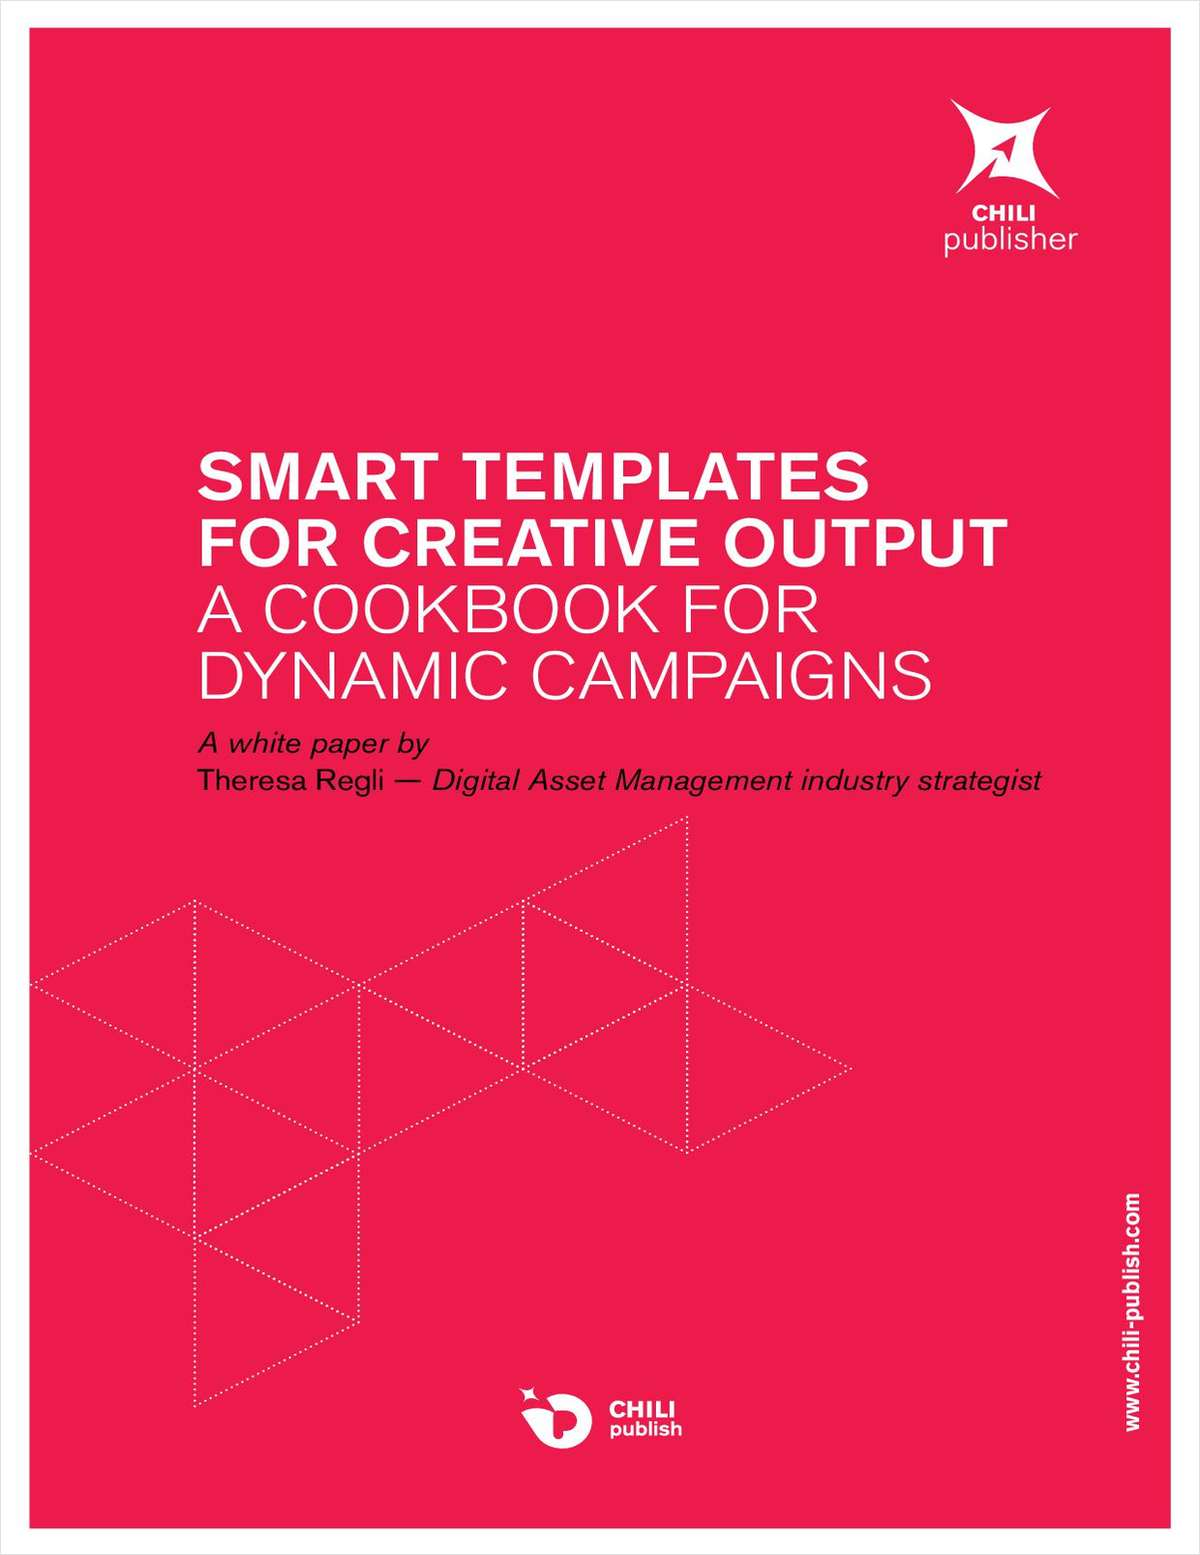 Smart Templates for Creative Output: A Cookbook for Dynamic Campaigns